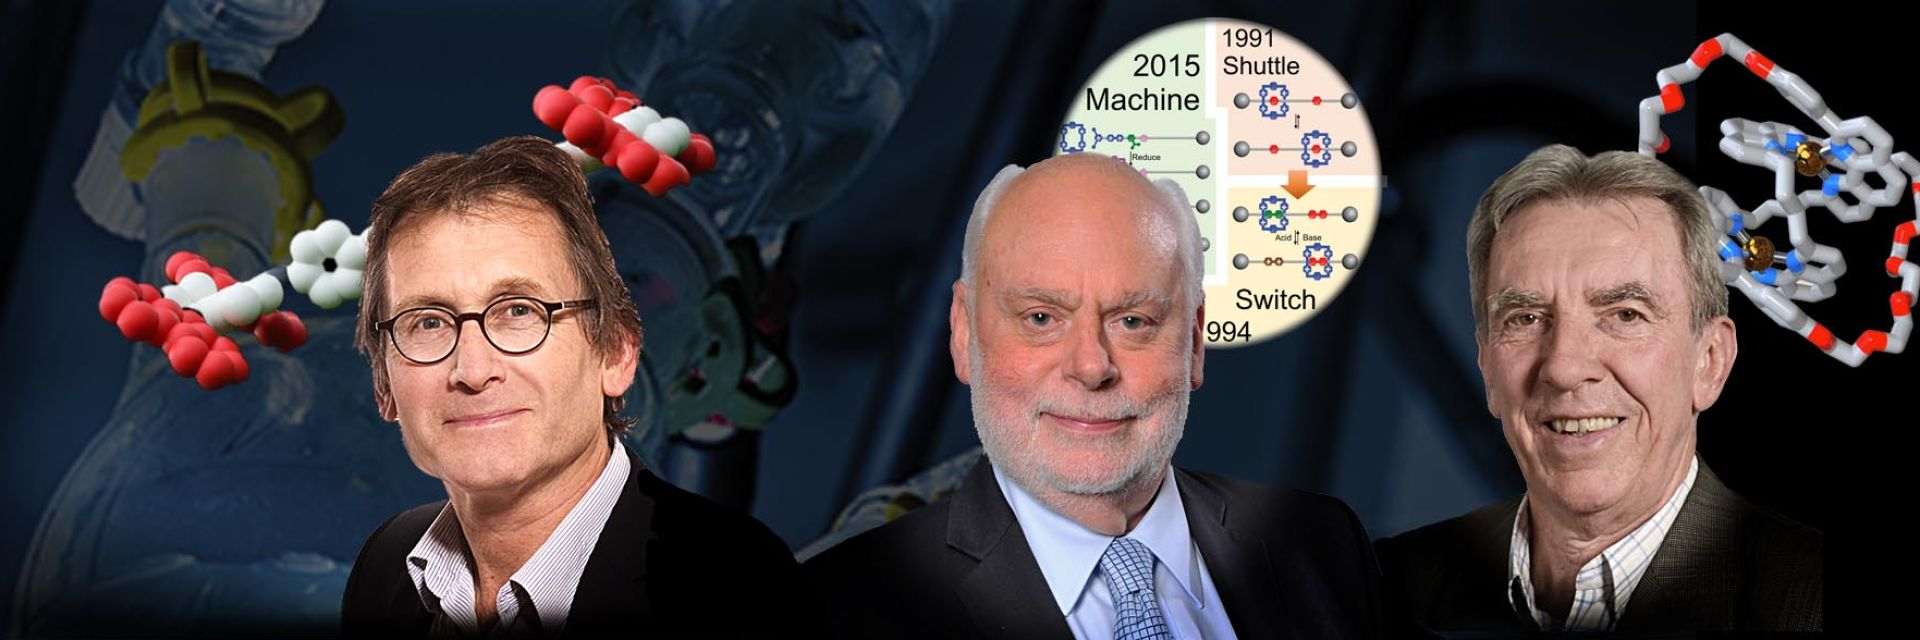 Molecular Machines Nobelprijs conferentie